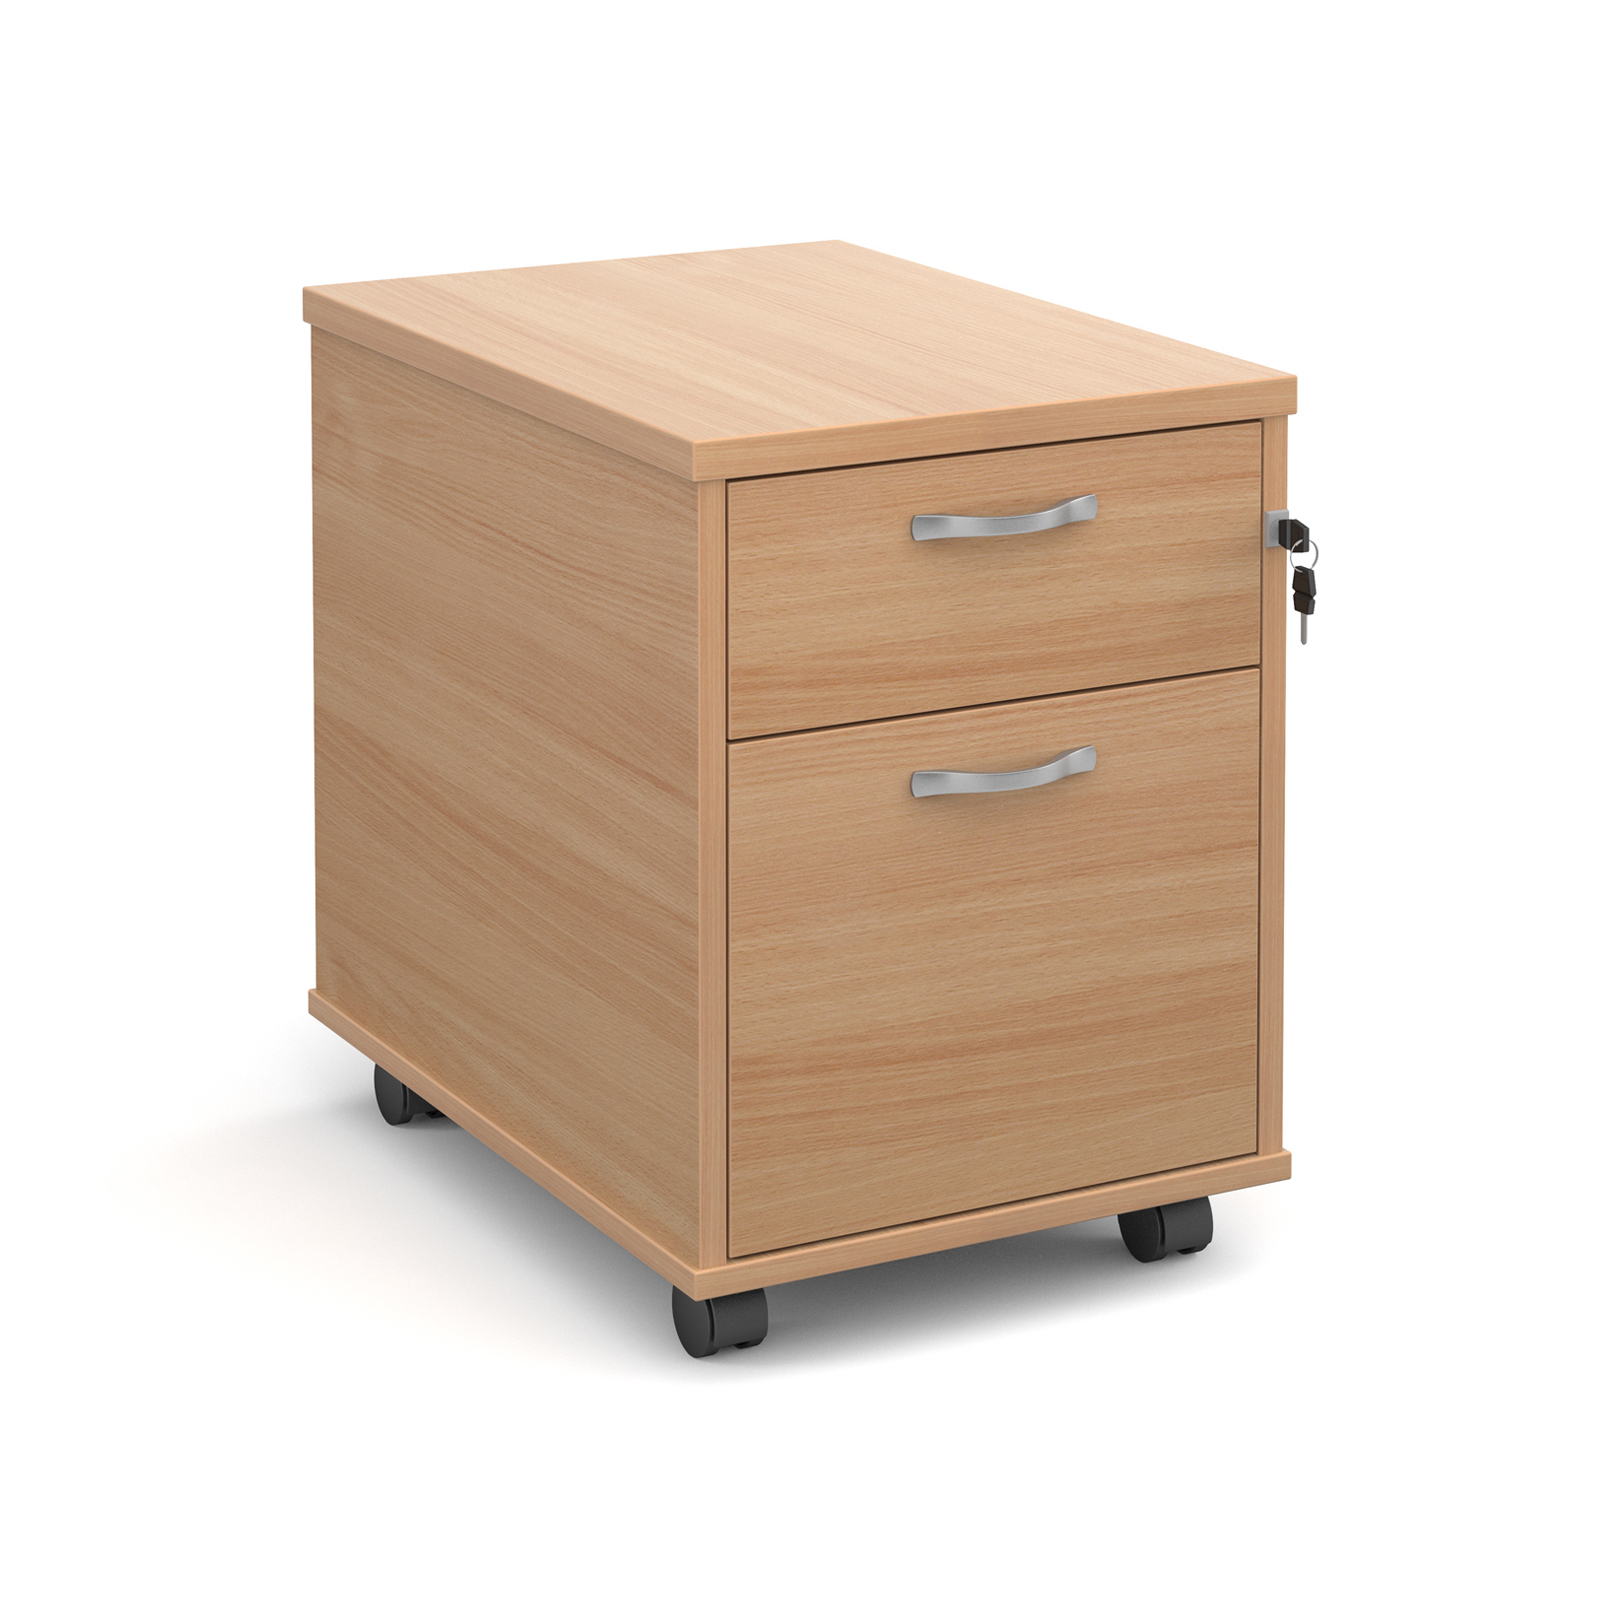 2 Drawer Mobile 2 drawer pedestal with silver handles 600mm deep - beech